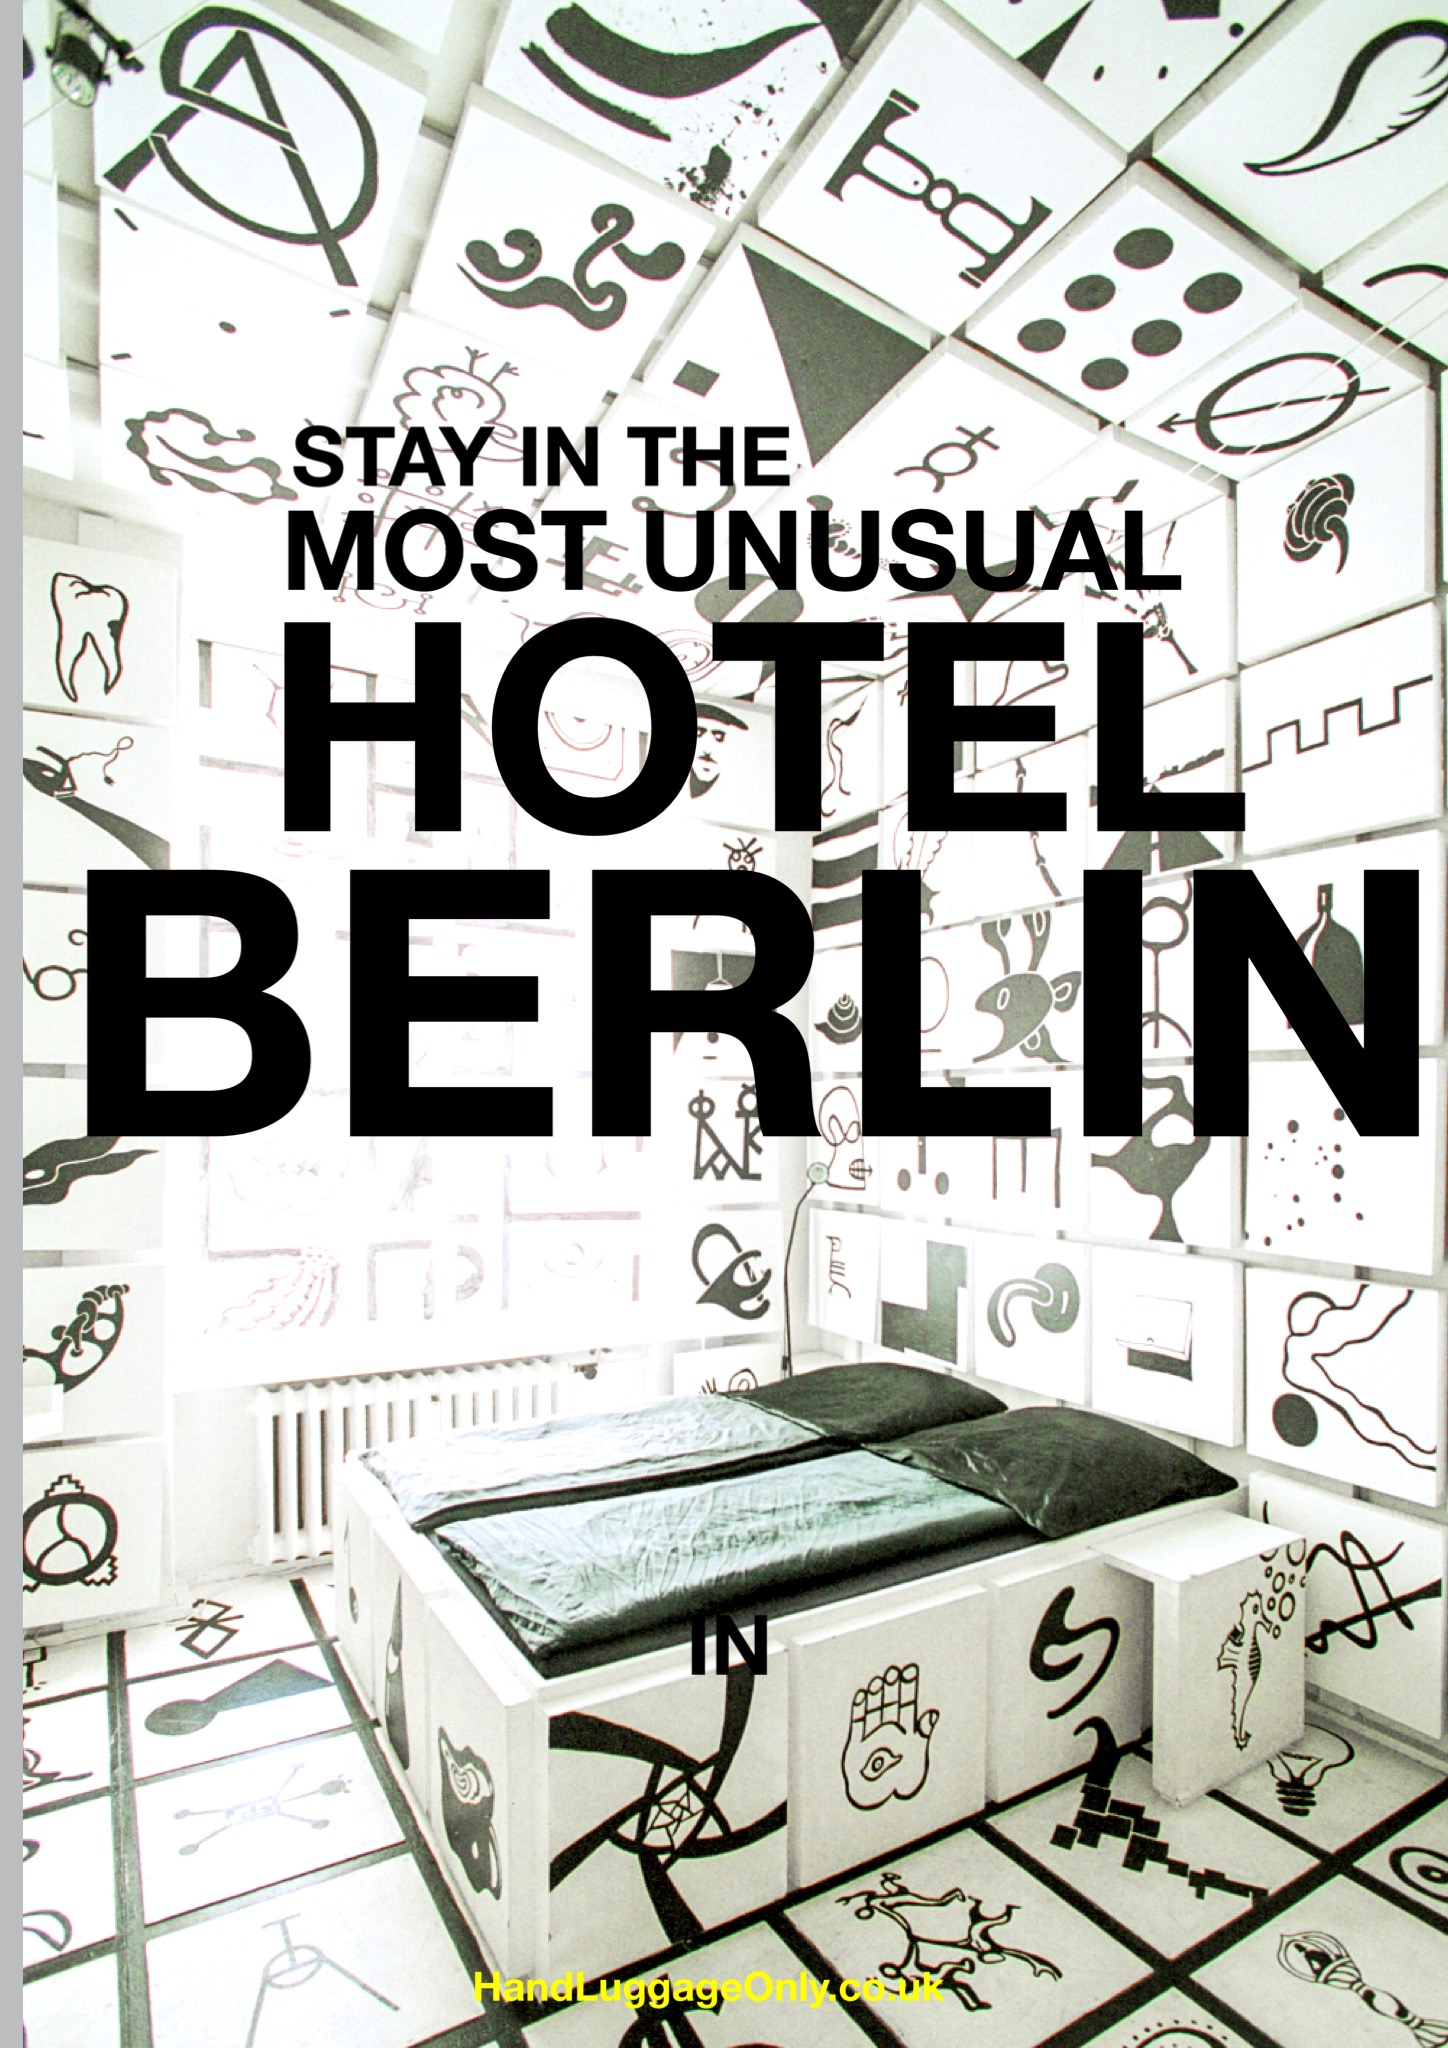 How To Stay In The Most Unusual Hotel In Berlin... Nay, The World! (1)